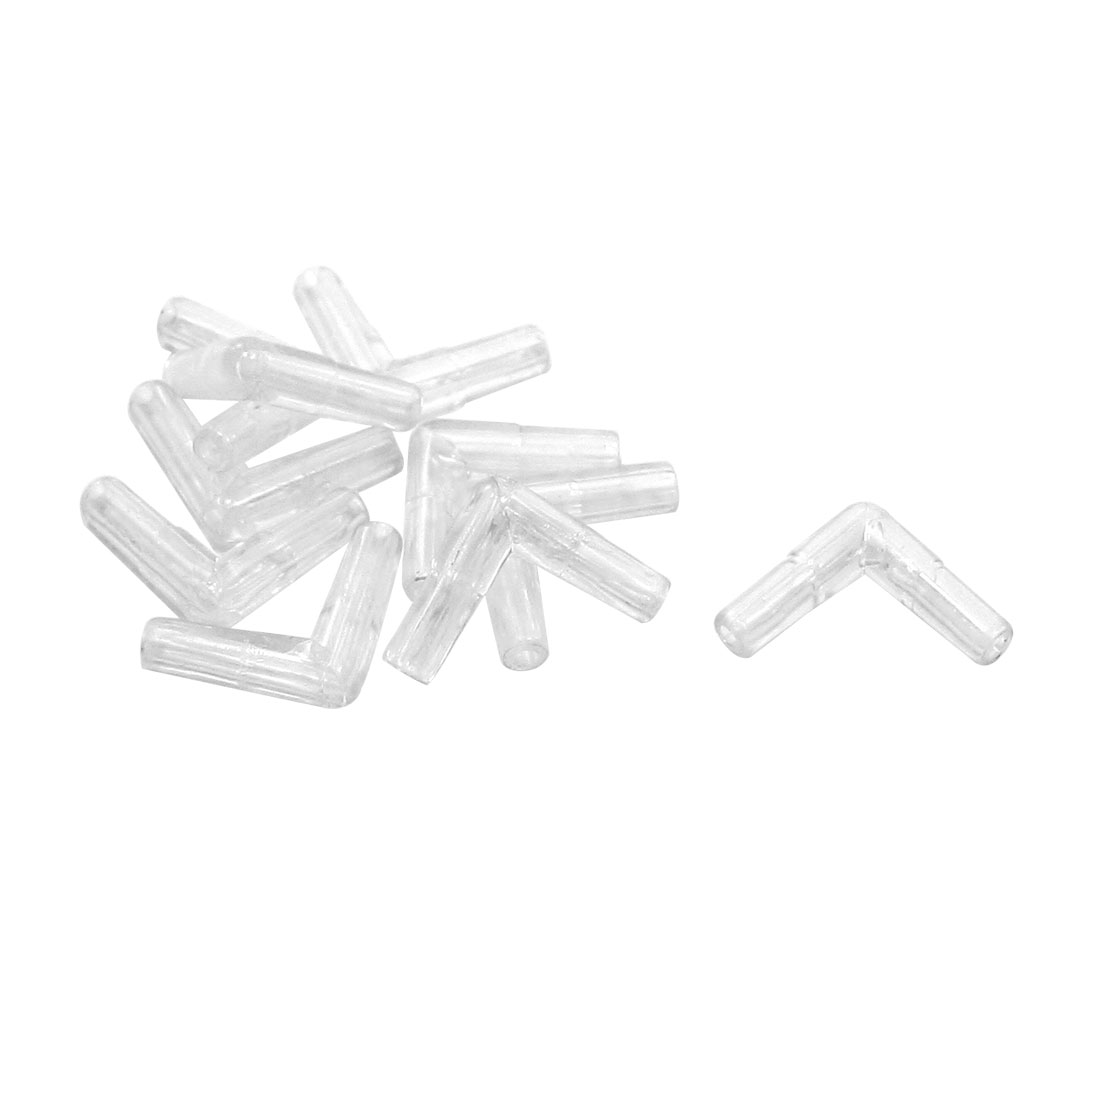 Aquarium L Shape Plastic Valve Tubing Air Line Connector 10 Pcs